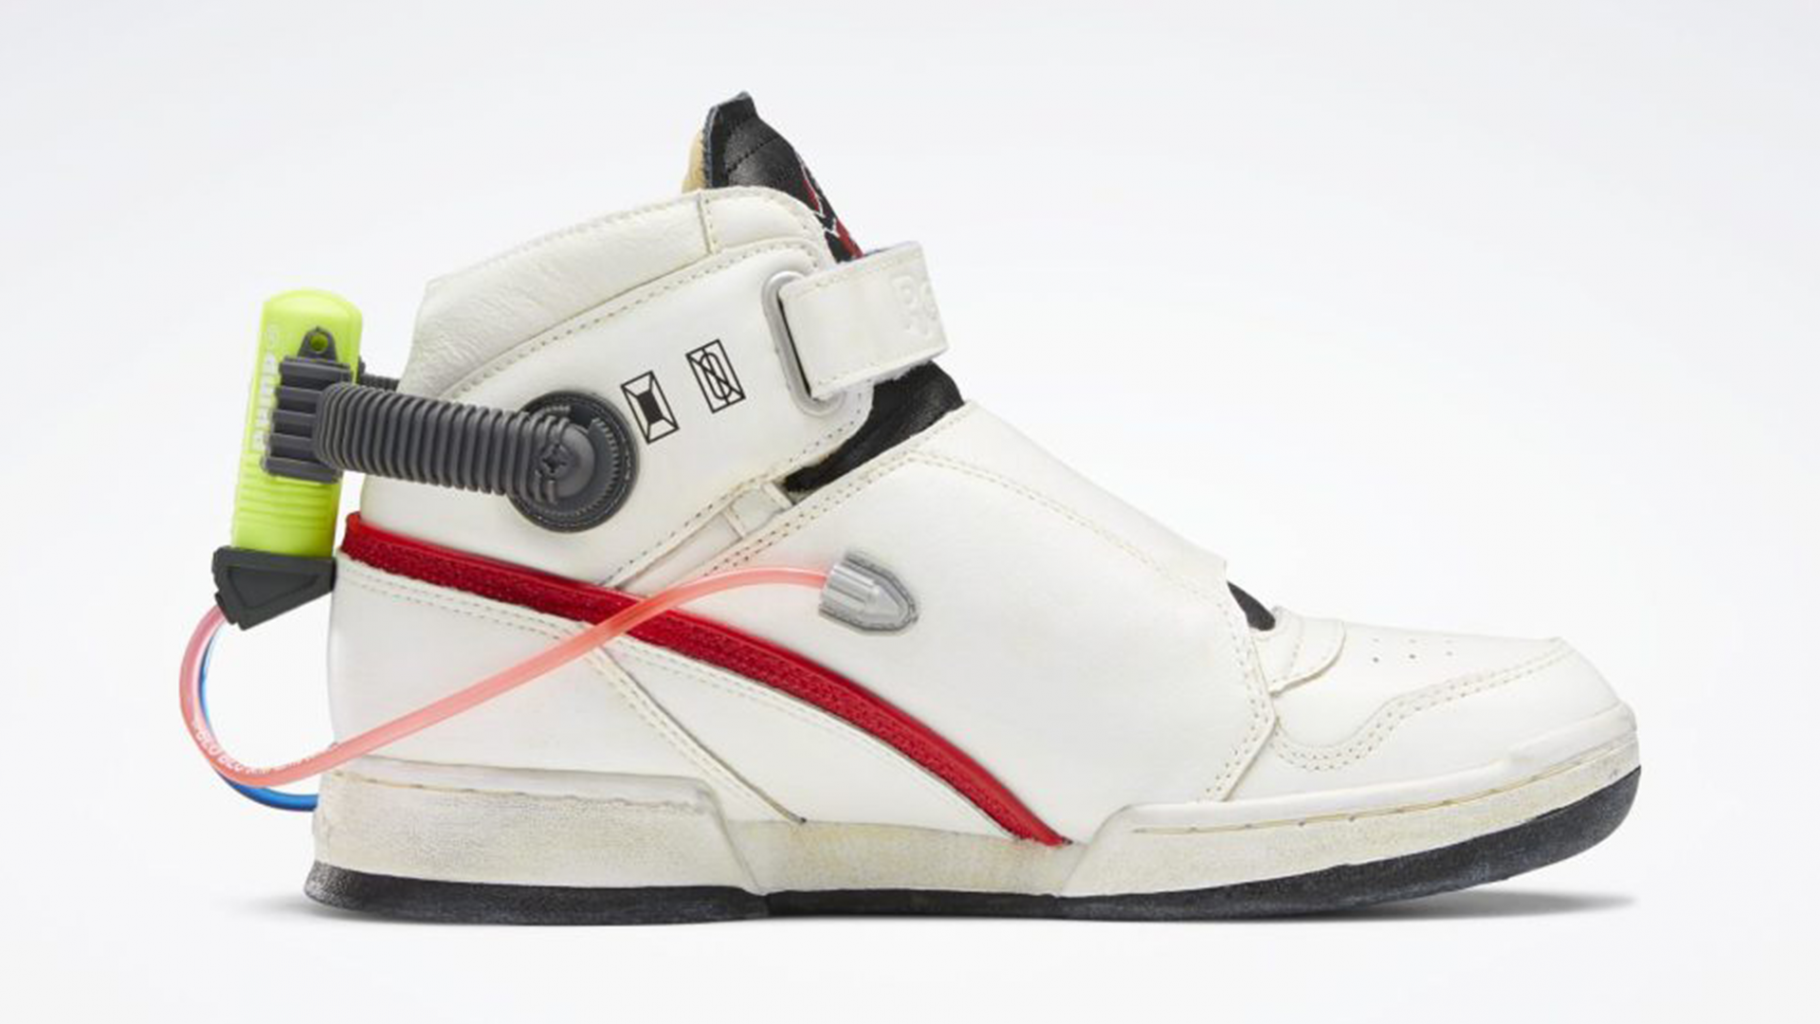 Ghostbusters_Ghost_Smashers_Mens_Shoes_White_FY2106_02_standard-e1603305536158.png